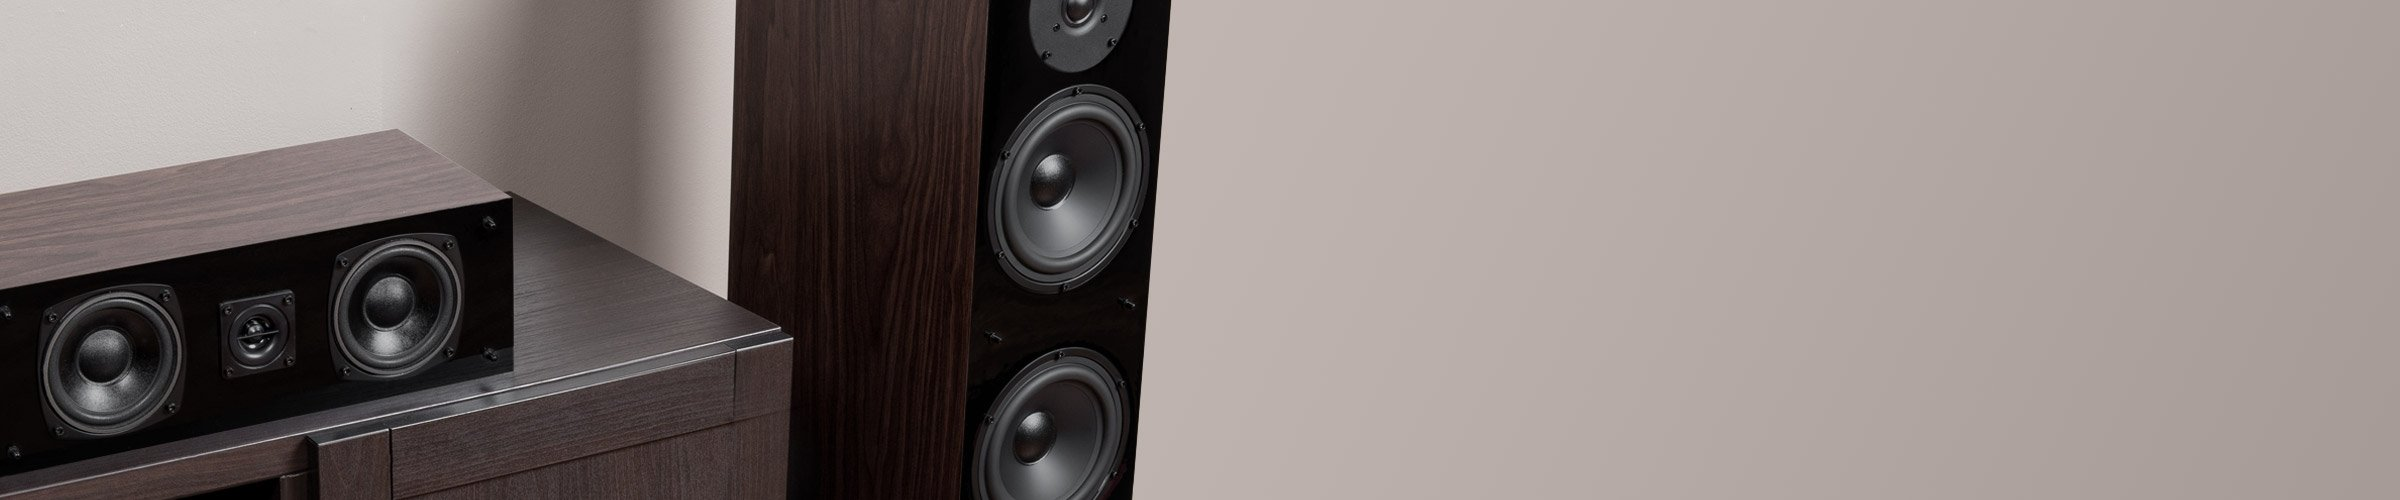 SXHTB Home Theater Speaker System Your Life Your Speakers